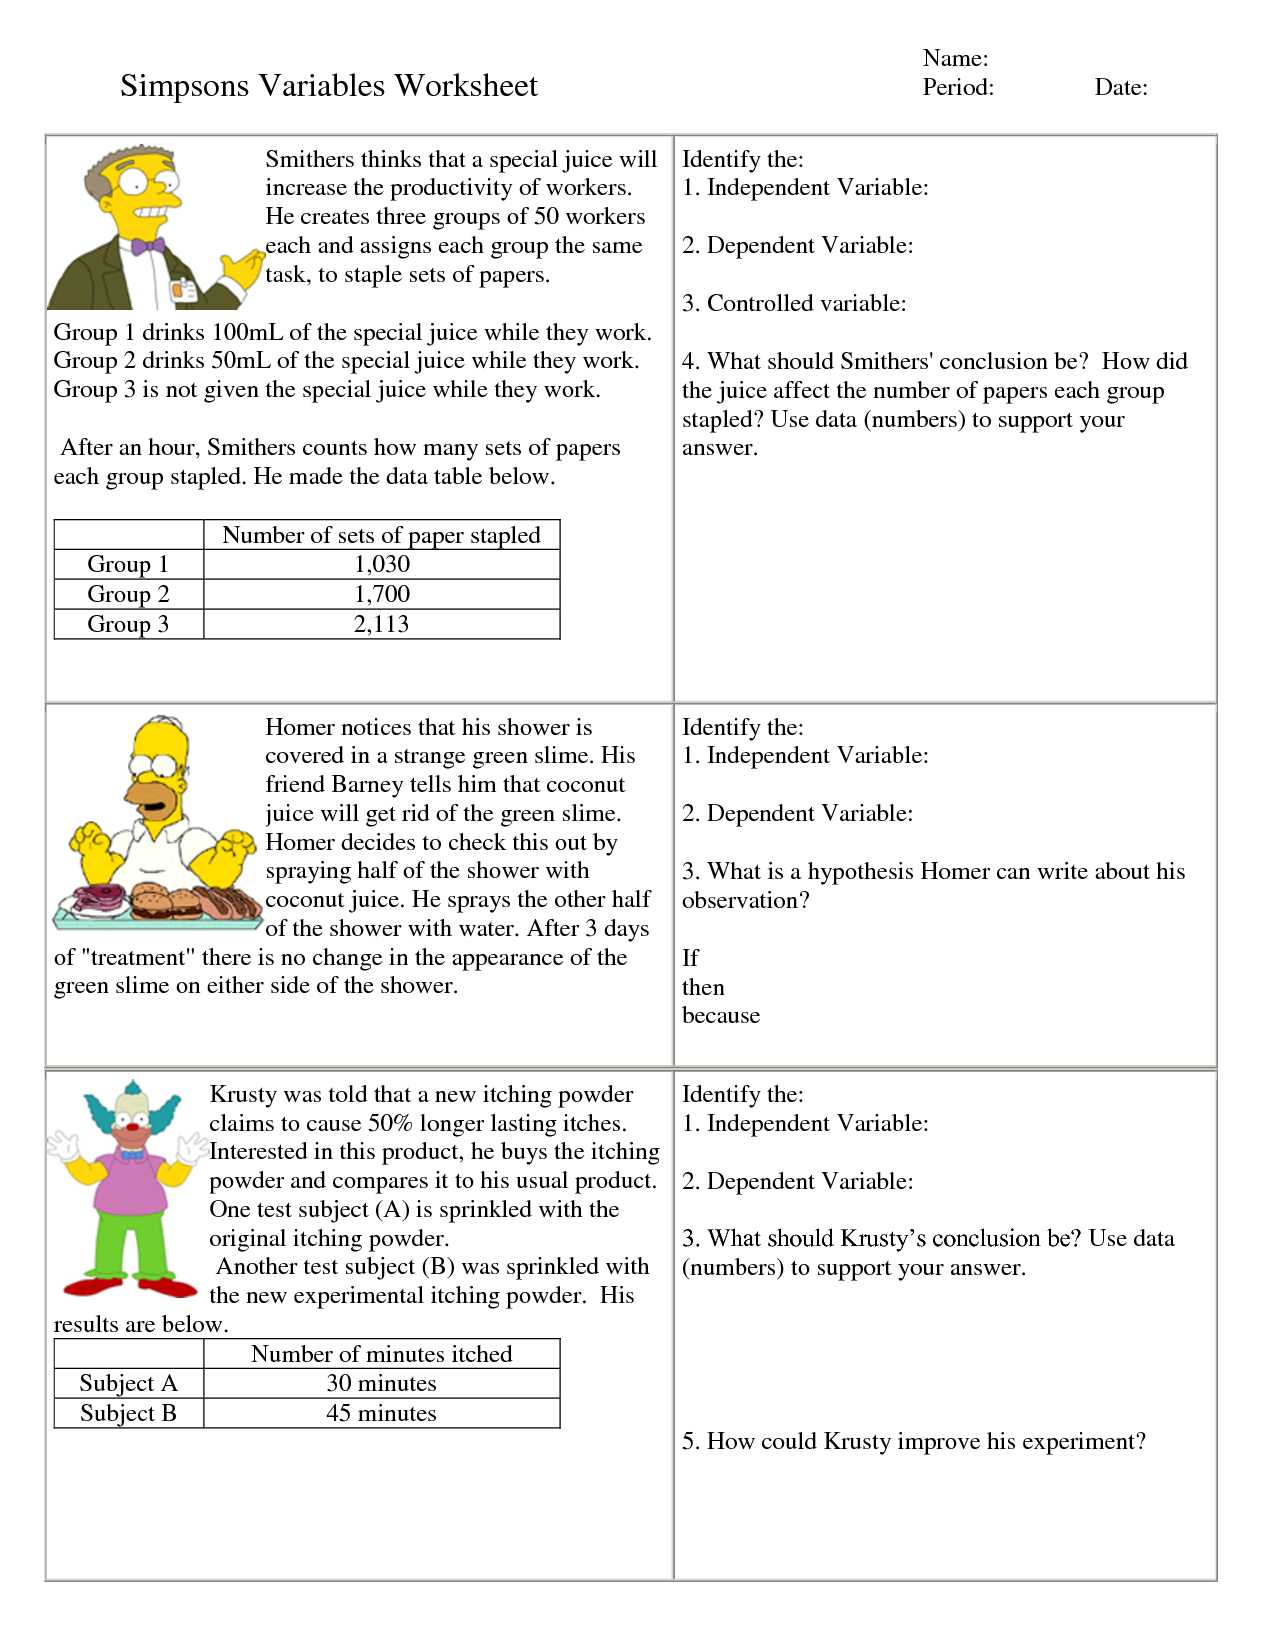 Bill Nye Energy Worksheet Answers Along with Bill Nye the Science Guy Electricity Worksheet Answers